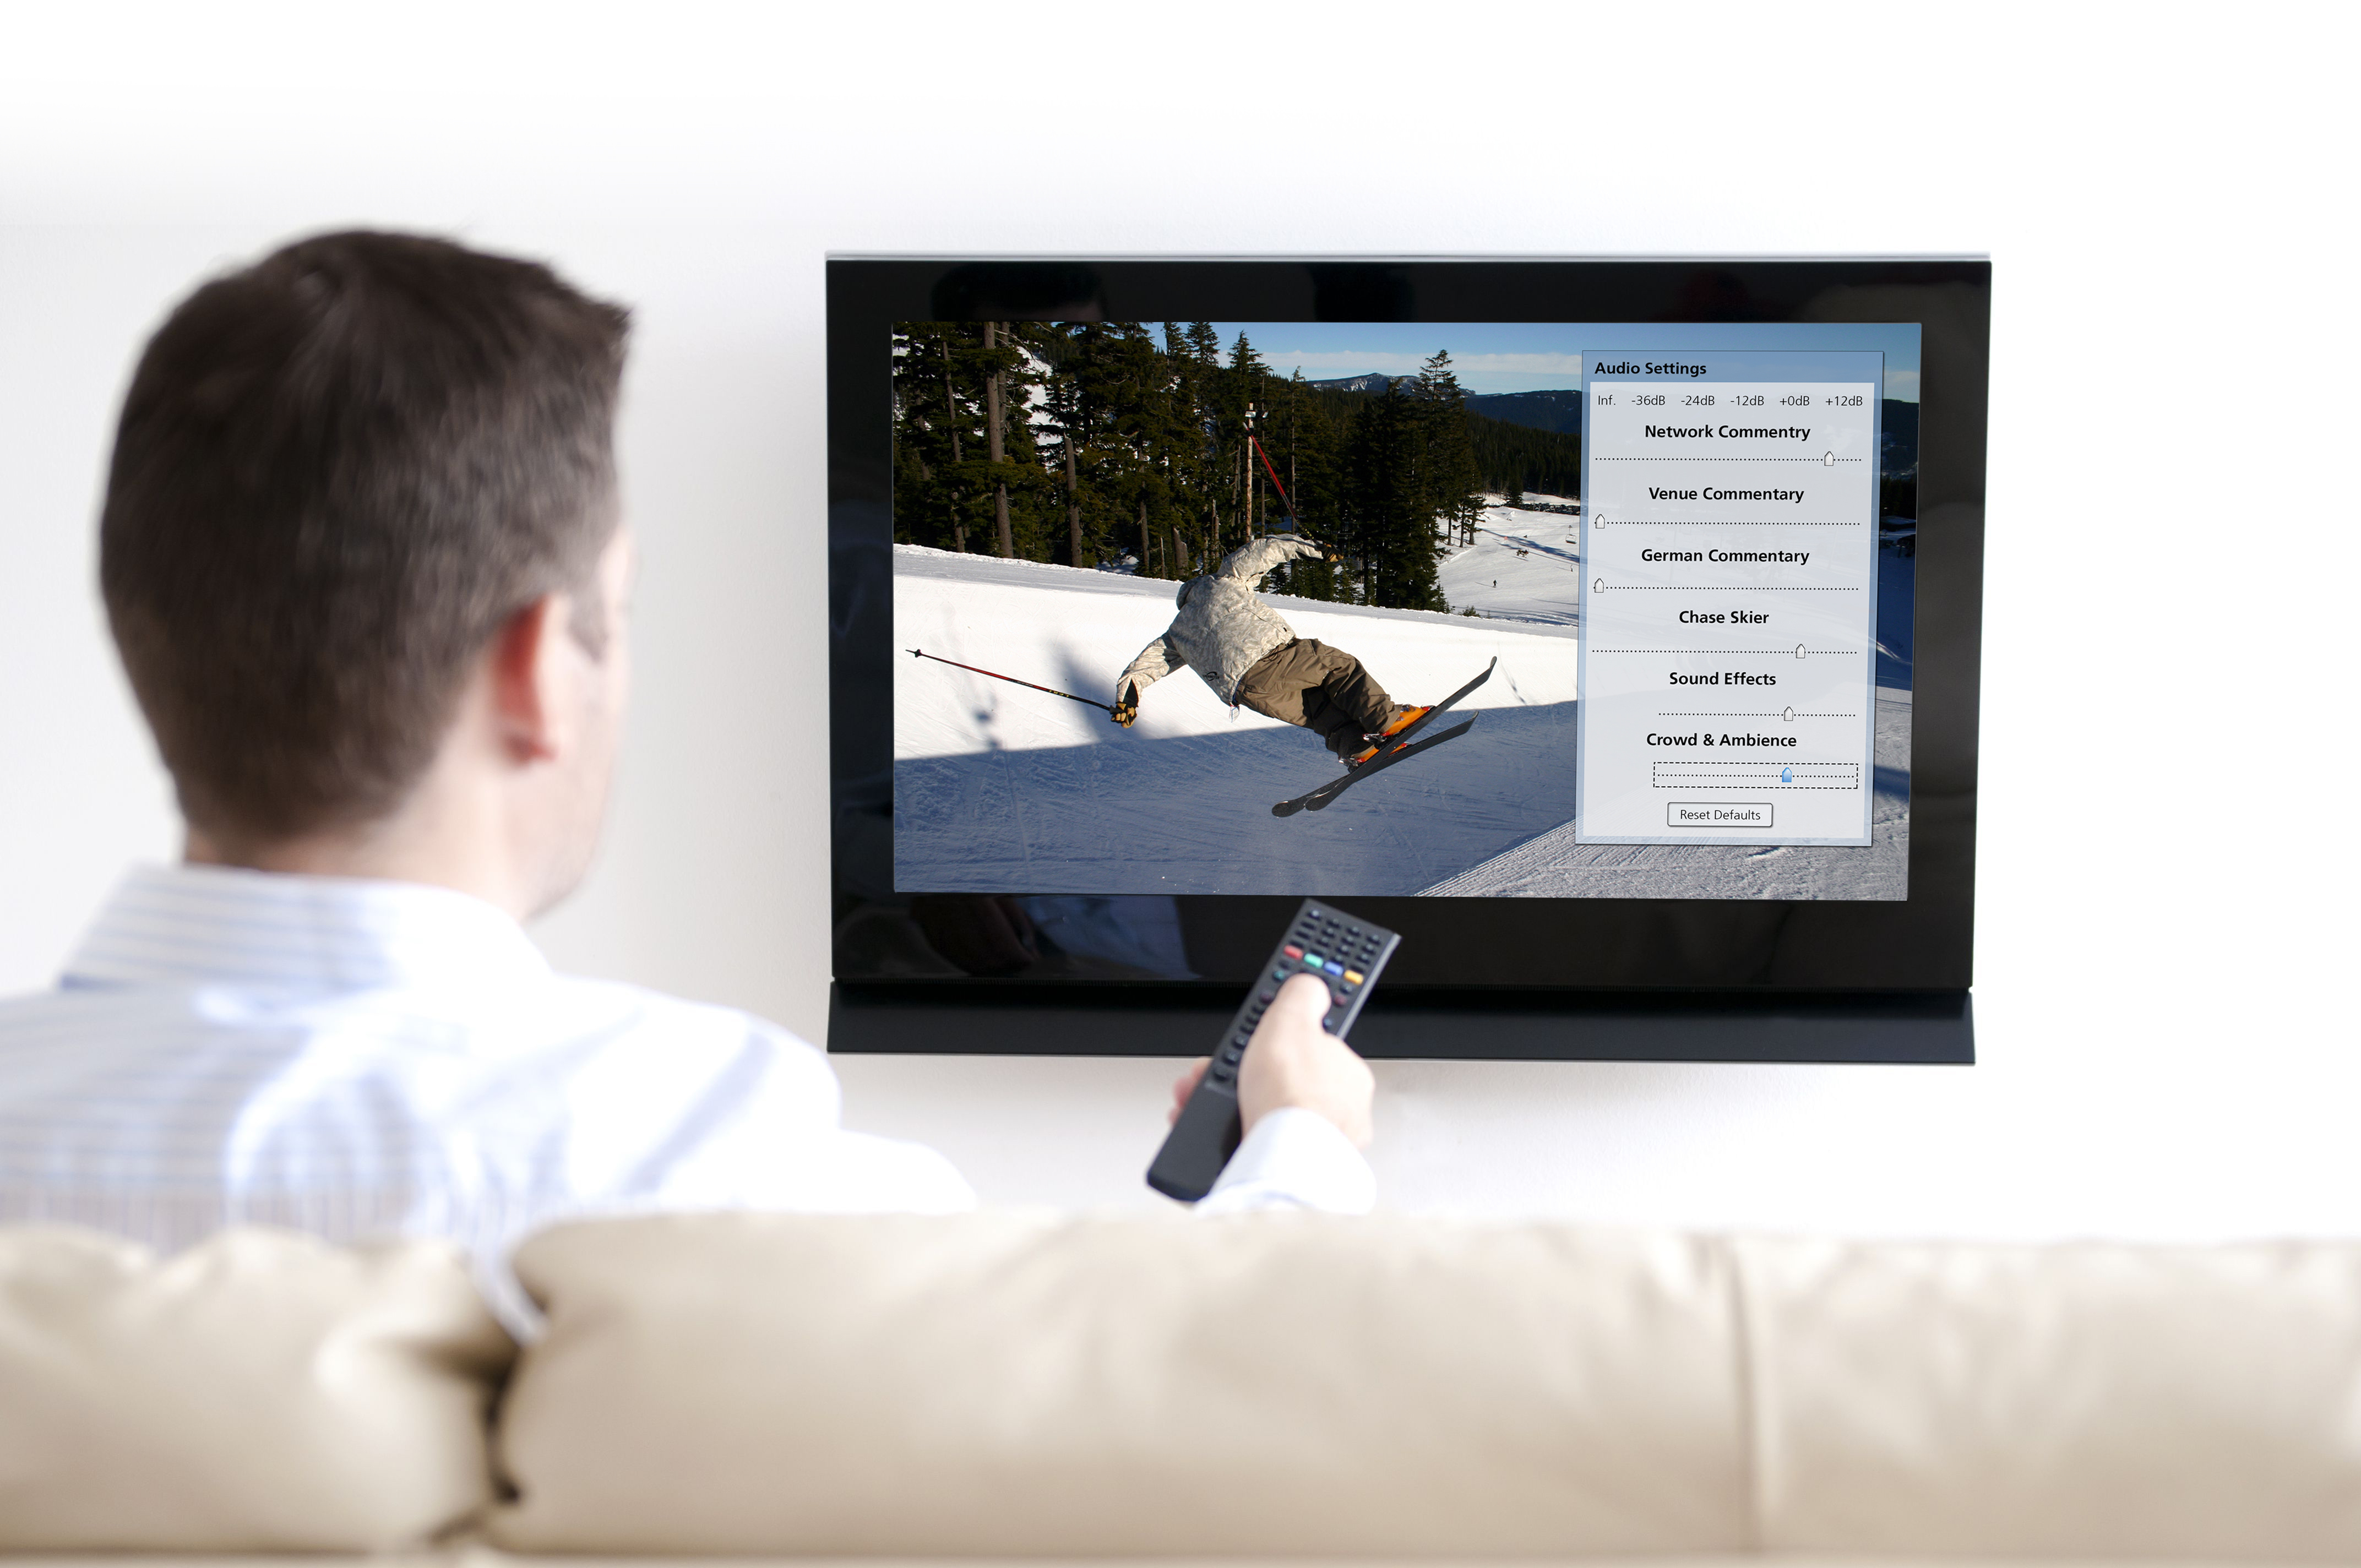 Fraunhofer's 3D TV Audio System allows viewers to personalize sound broadcasts to suit their personal preferences. With a click of the remote, they can create their favorite mix of sports broadcasts. (Copyright: Getty Images/Fraunhofer USA)